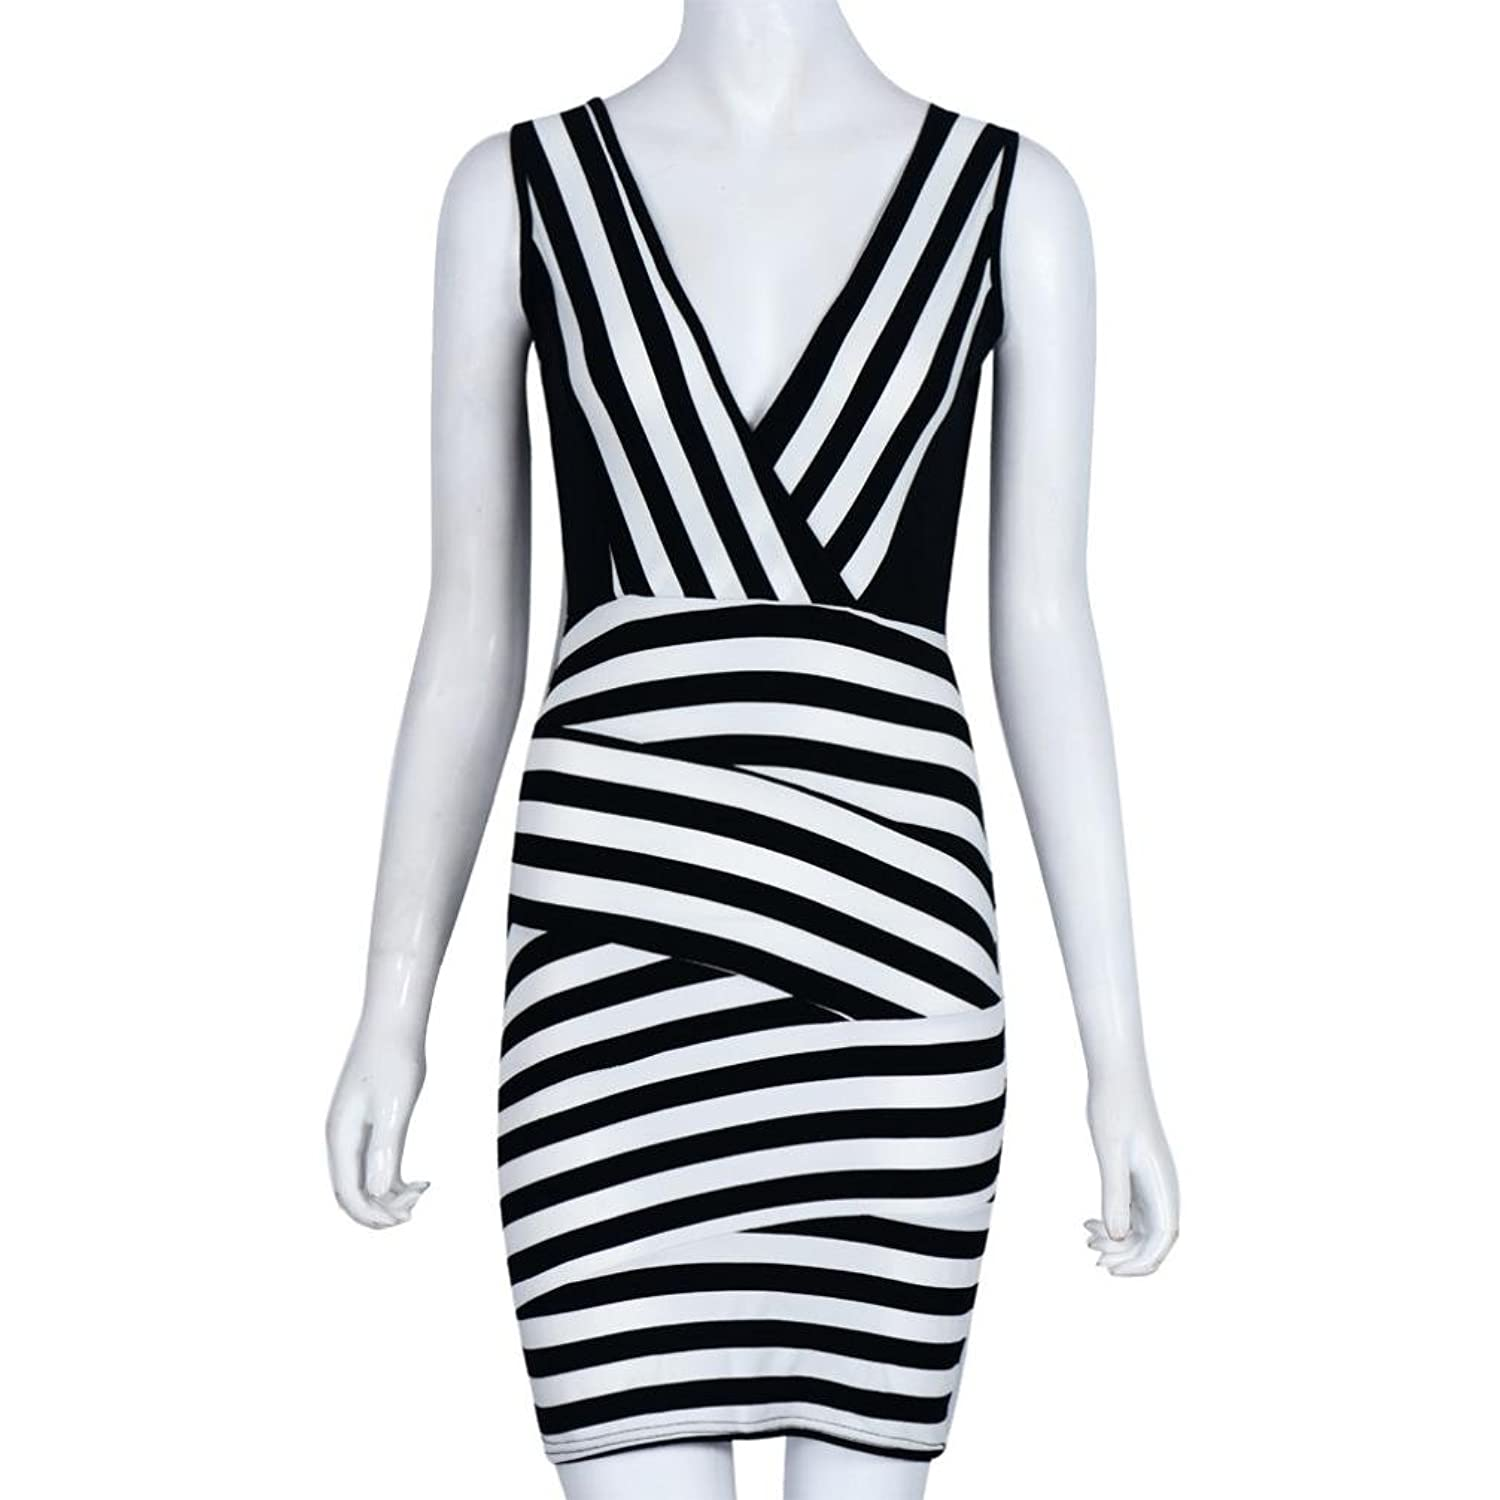 GOTD Sexy Stripe Patchwork V-Neck Sleeveless Sheath Mini Dress Slim Fit Bodycon